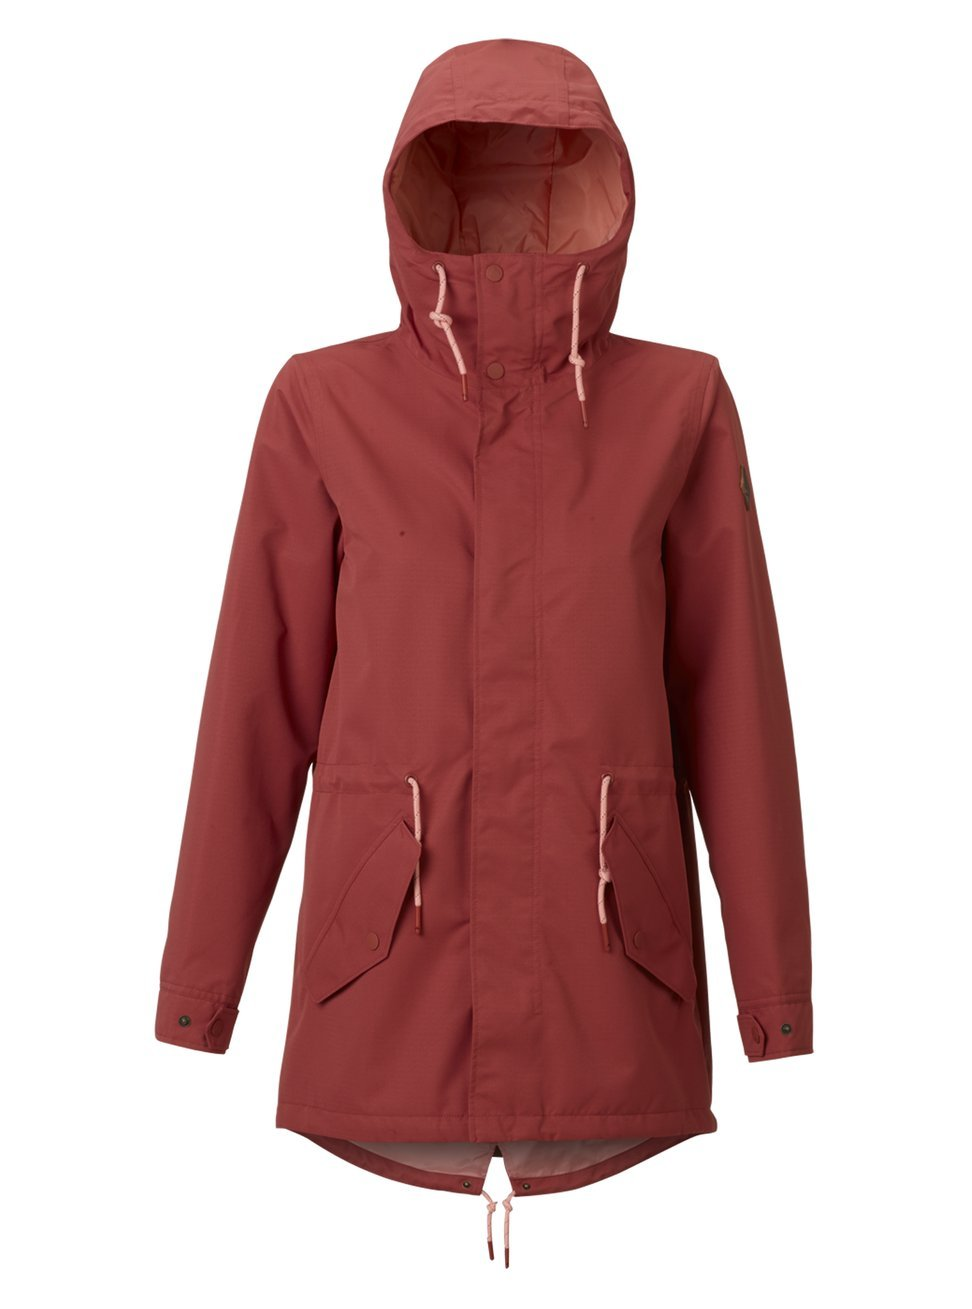 Burton Women's Sadie Jacket, Marsala, Medium